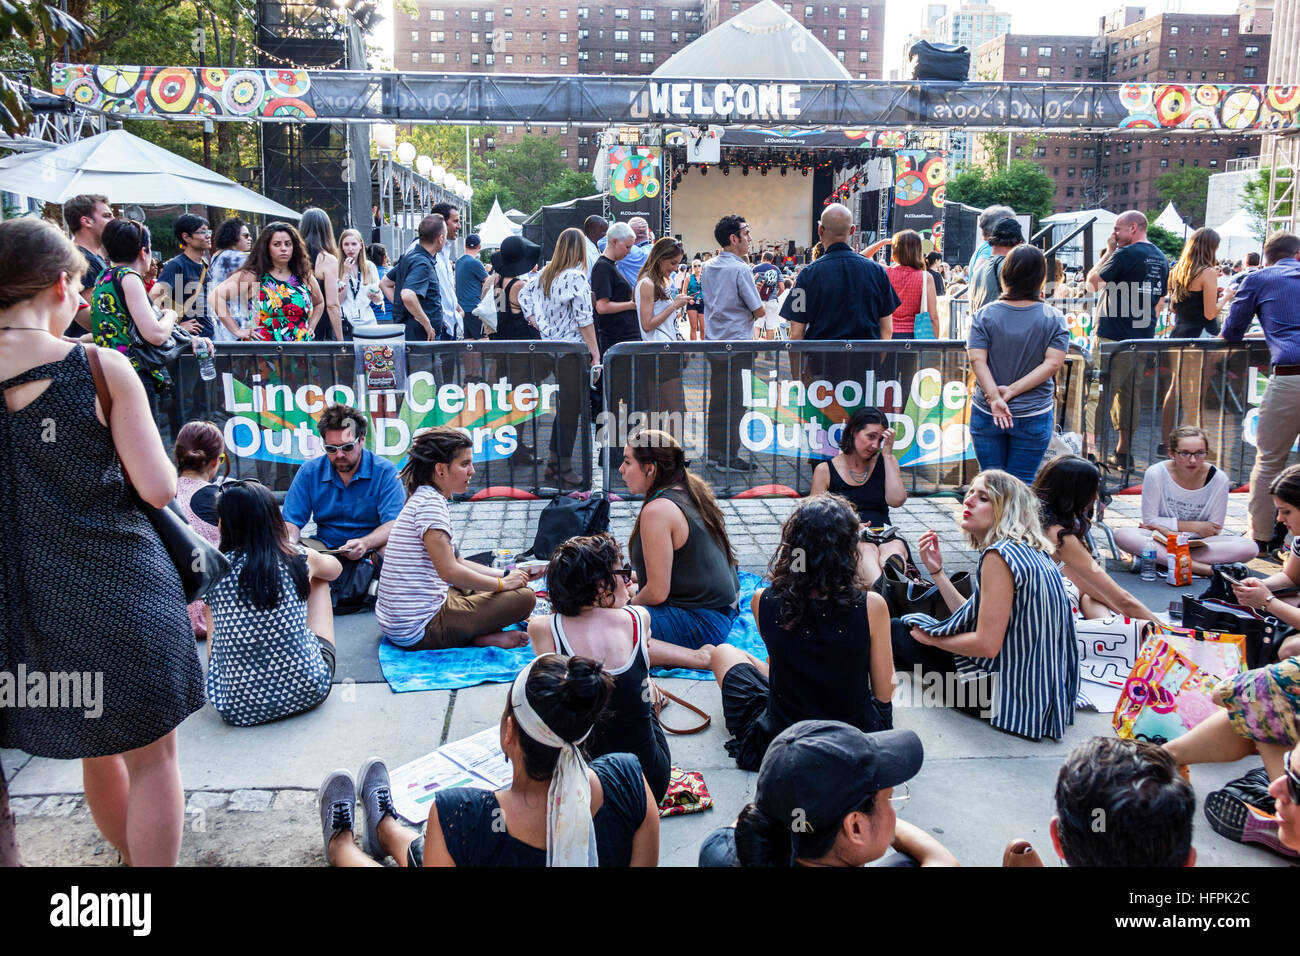 Manhattan New York City NYC NY Lincoln Square Lincoln Center Plaza PAC Out of Doors concert man woman sitting on - Stock Image